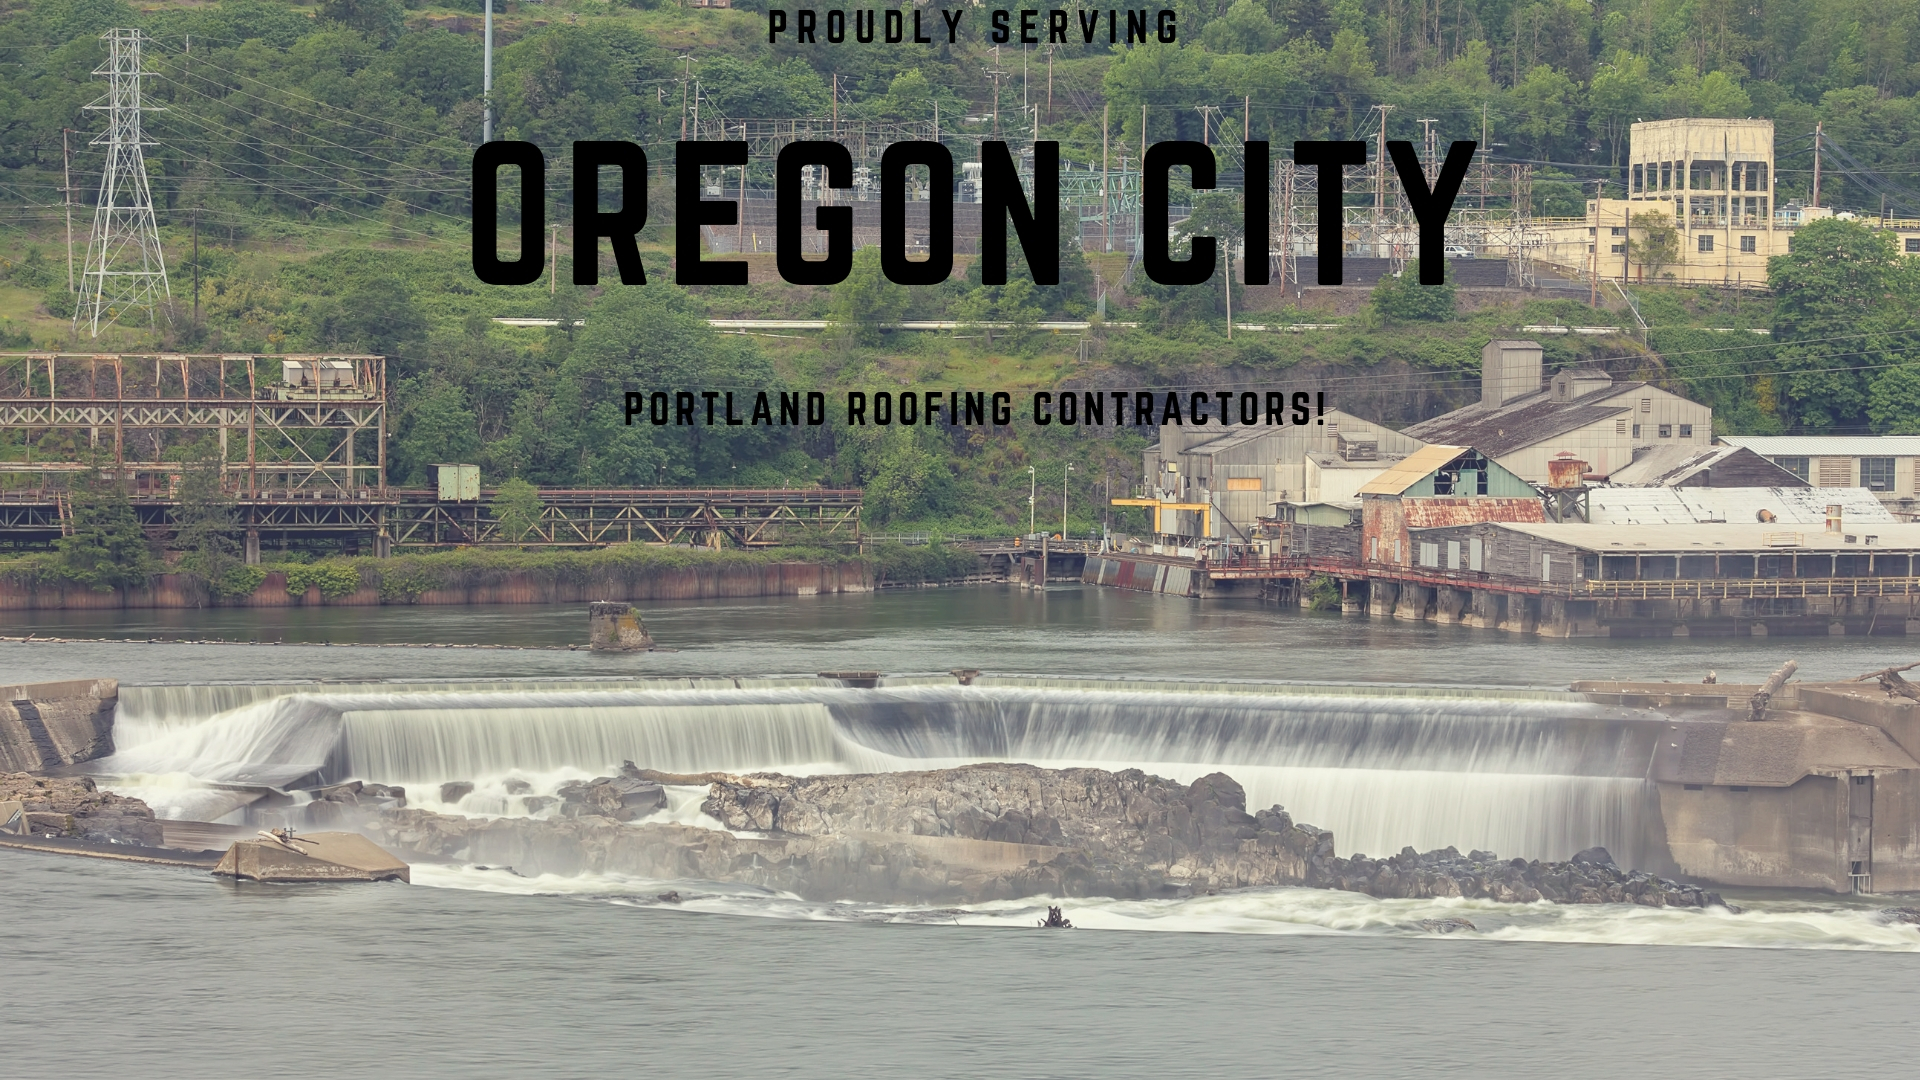 Oregon City Roofing